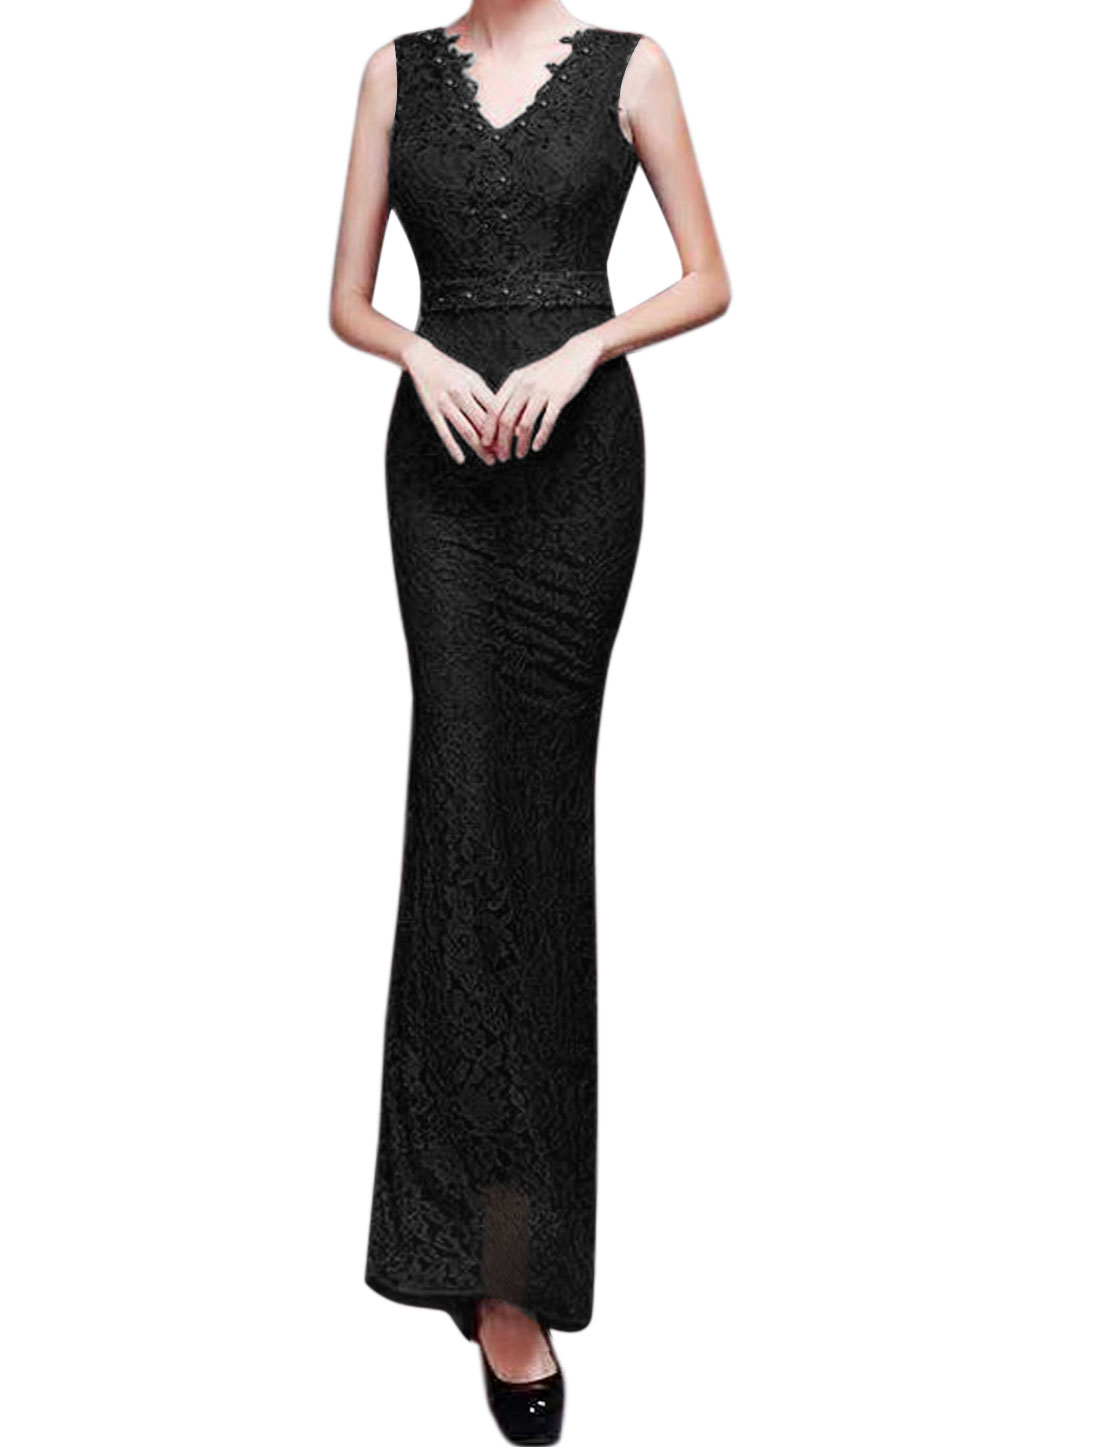 Women V Neck Rhinestone Decor Floral Lace Maxi Dress Black S